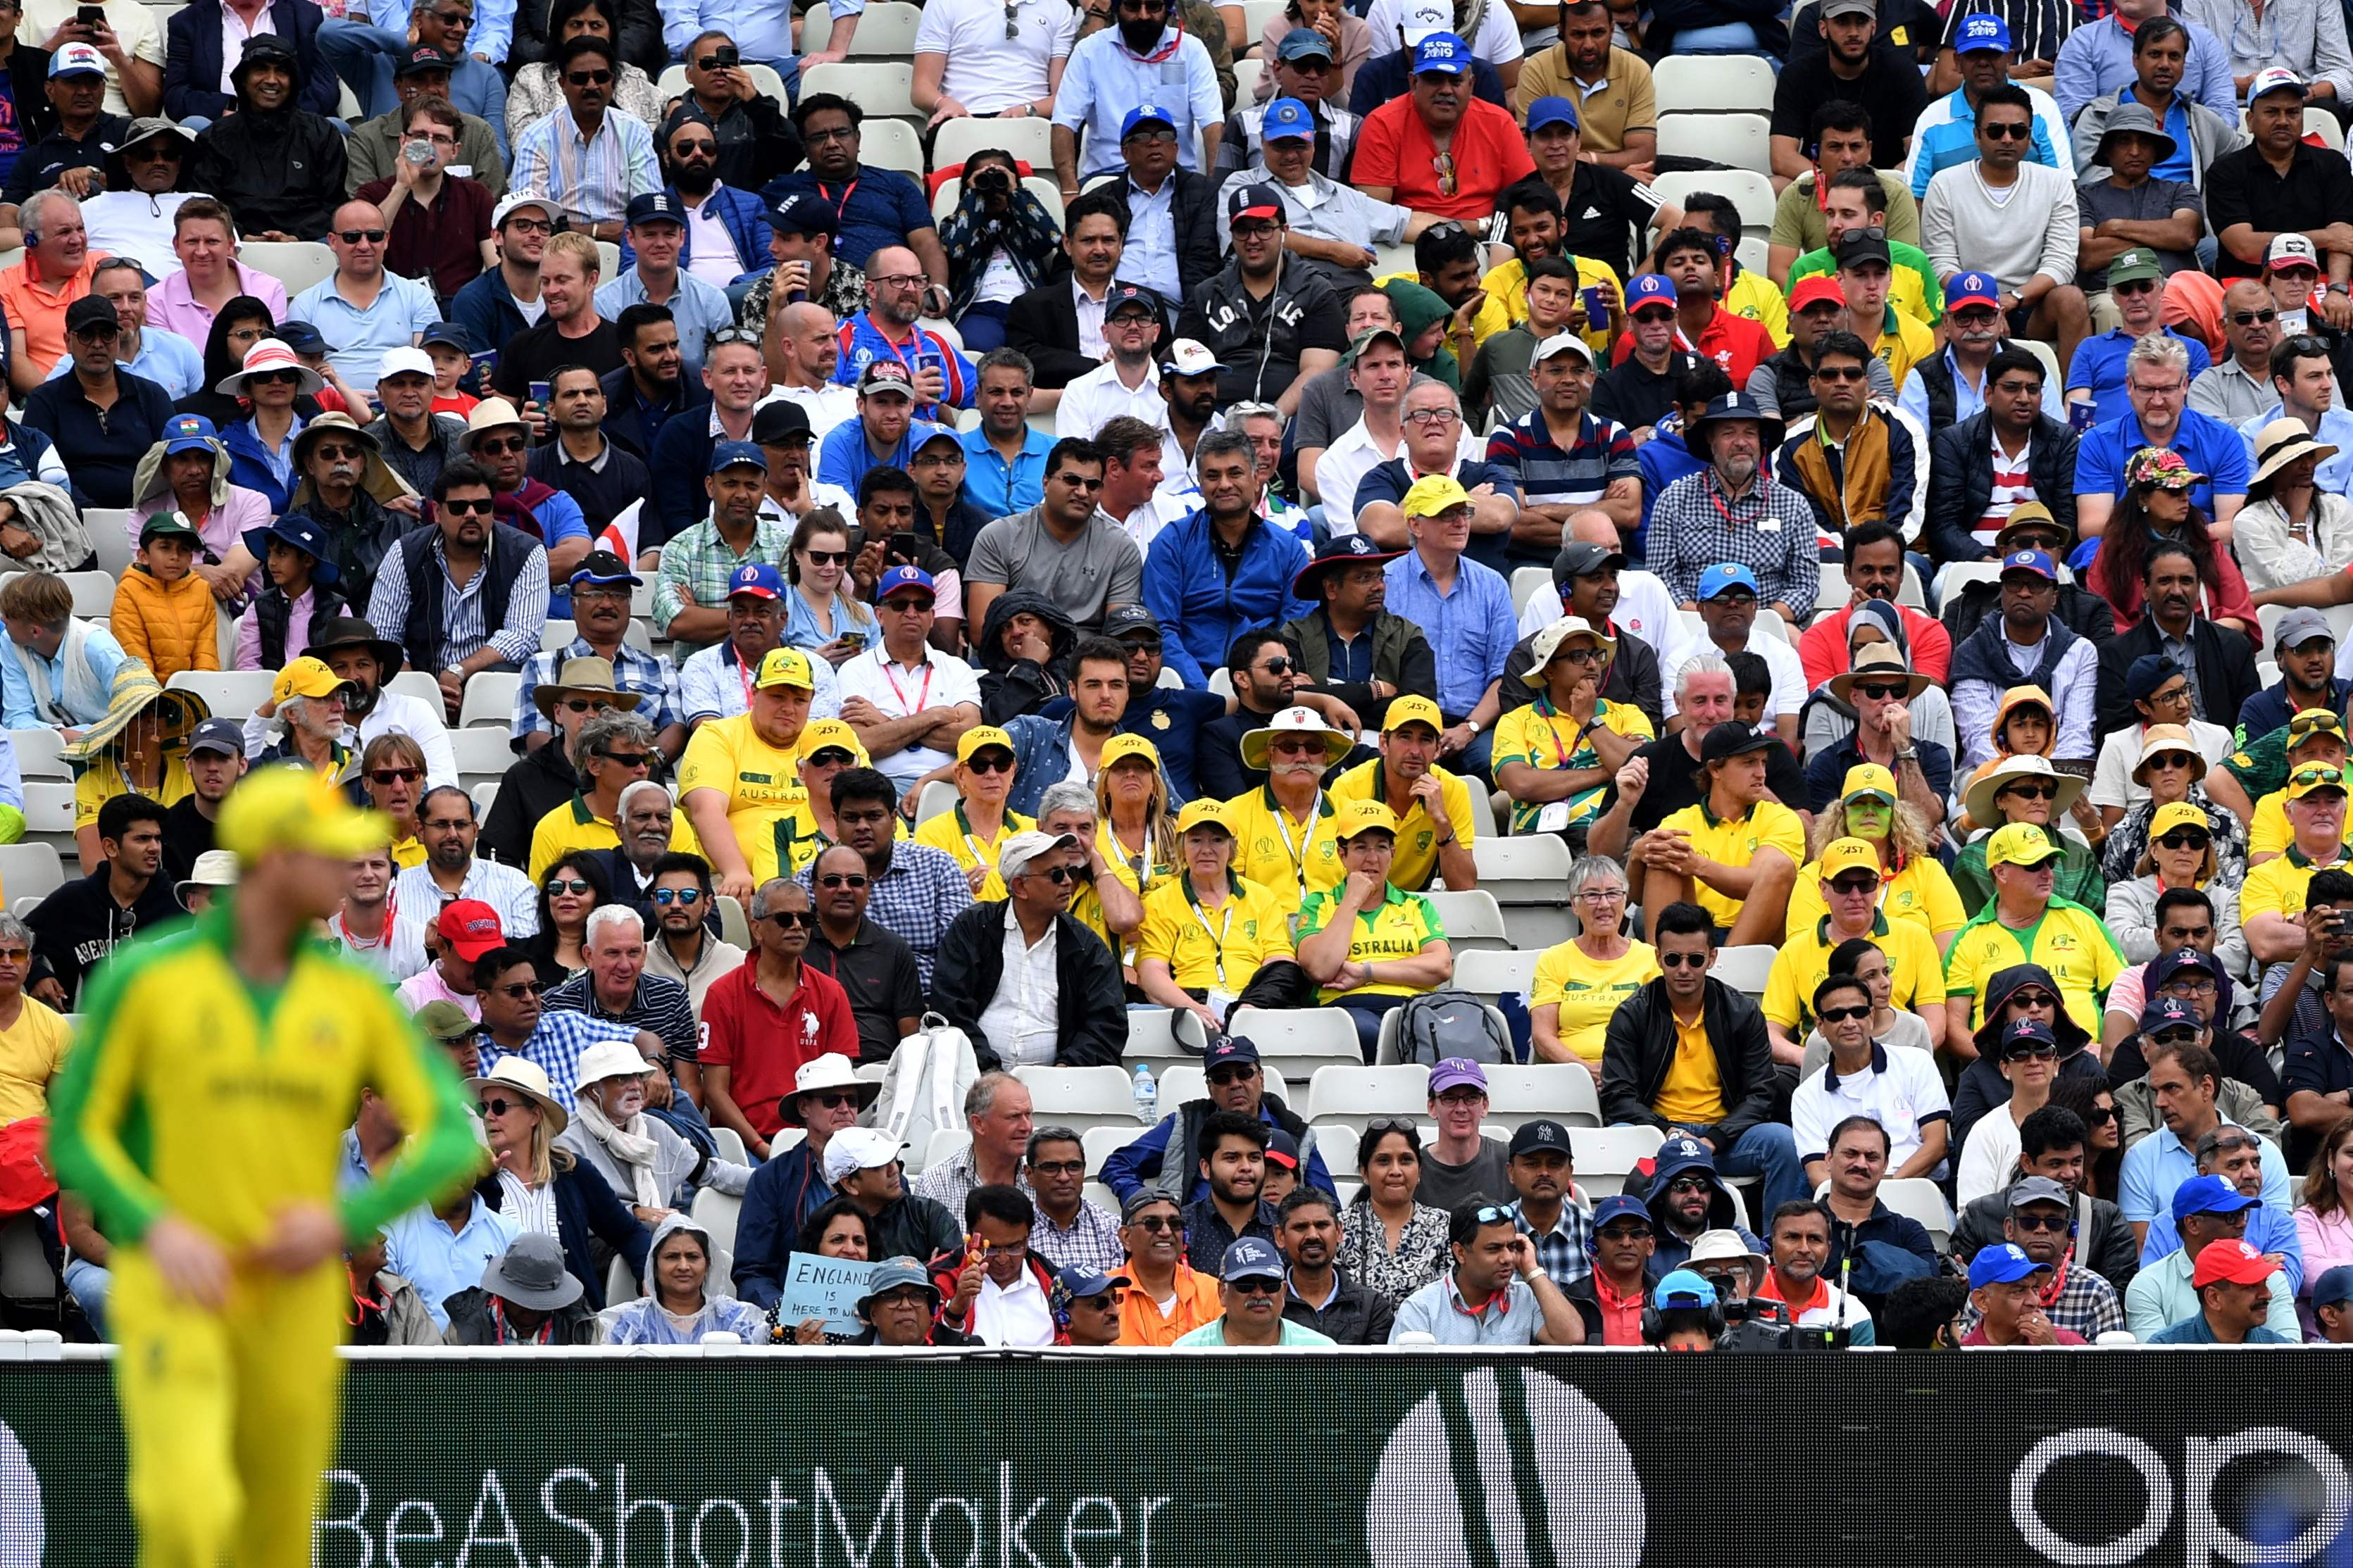 Australian fans look on during the 2019 Cricket World Cup second semi-final. Photo: AFP